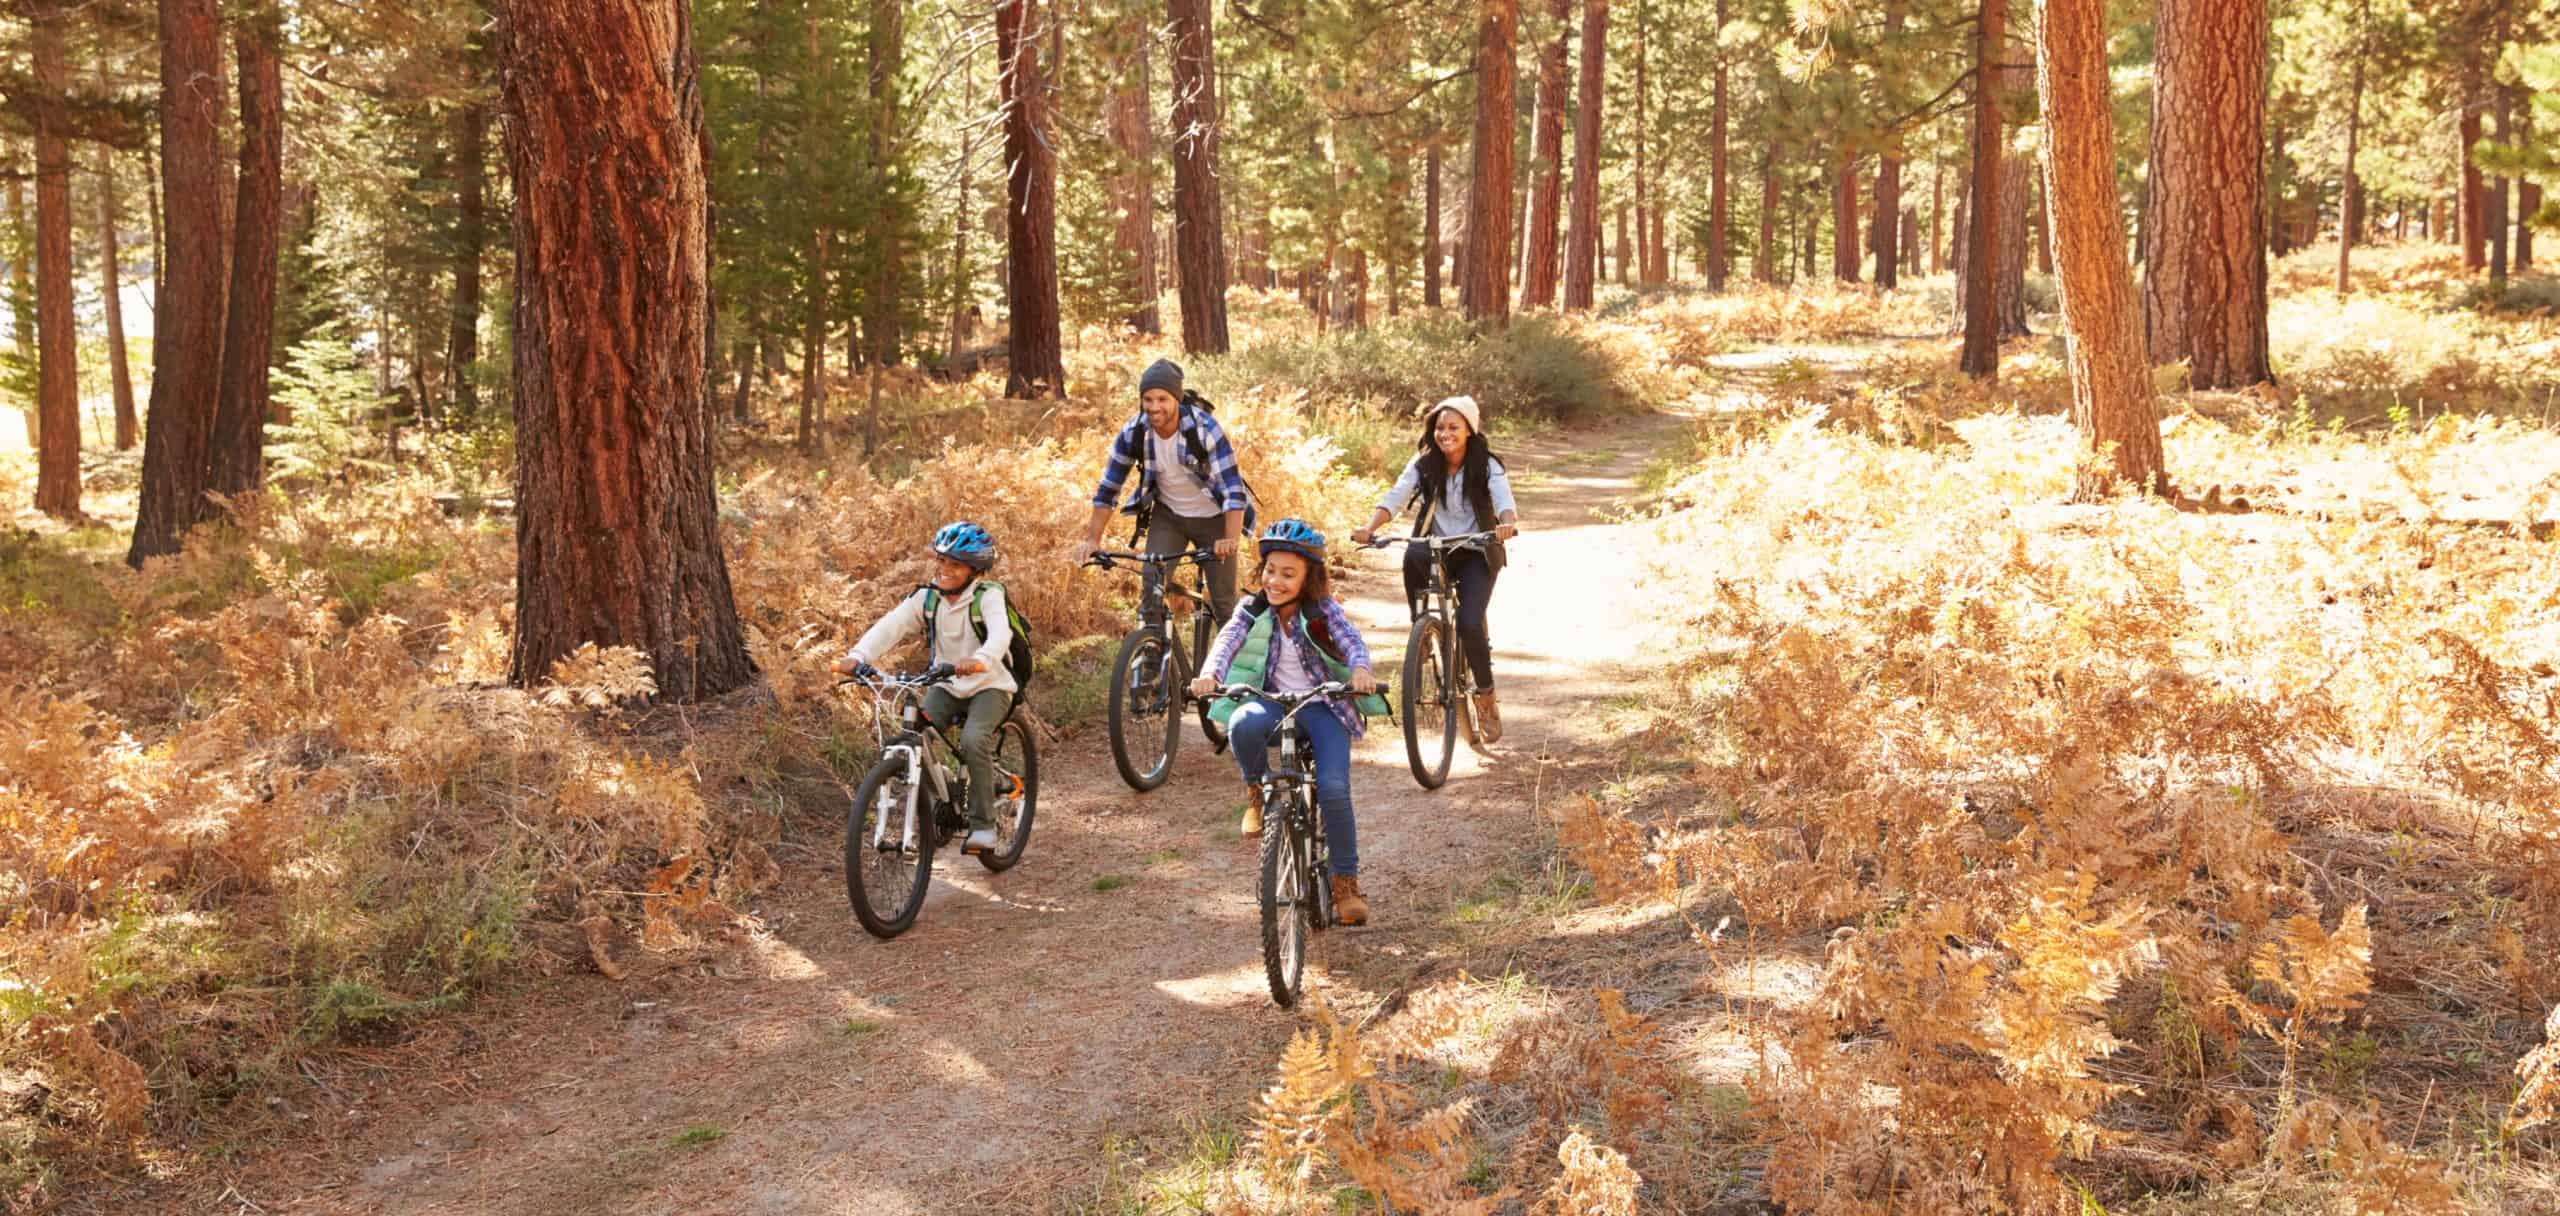 Family riding bicycles on a wooded trail.